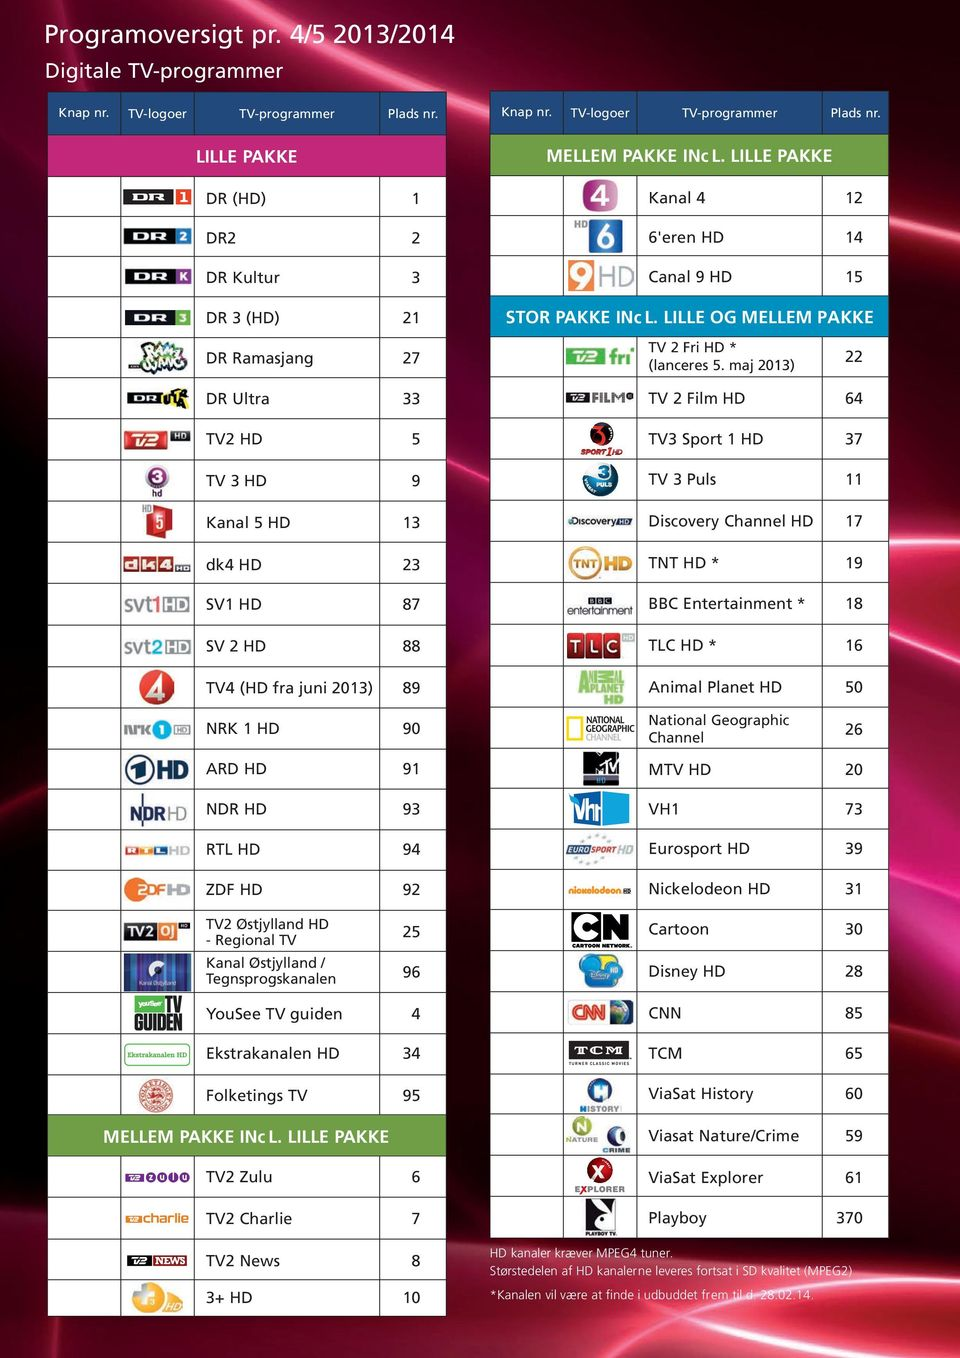 maj 2013) 22 DR Ultra 33 TV2 HD 5 TV 3 HD 9 Kanal 5 HD 13 dk4 HD 23 SV1 HD 87 SV 2 HD 88 TV4 (HD fra juni 2013) 89 TV 2 Film HD 64 TV3 Sport 1 HD 37 TV 3 Puls 11 Discovery Channel HD 17 TNT HD * 19